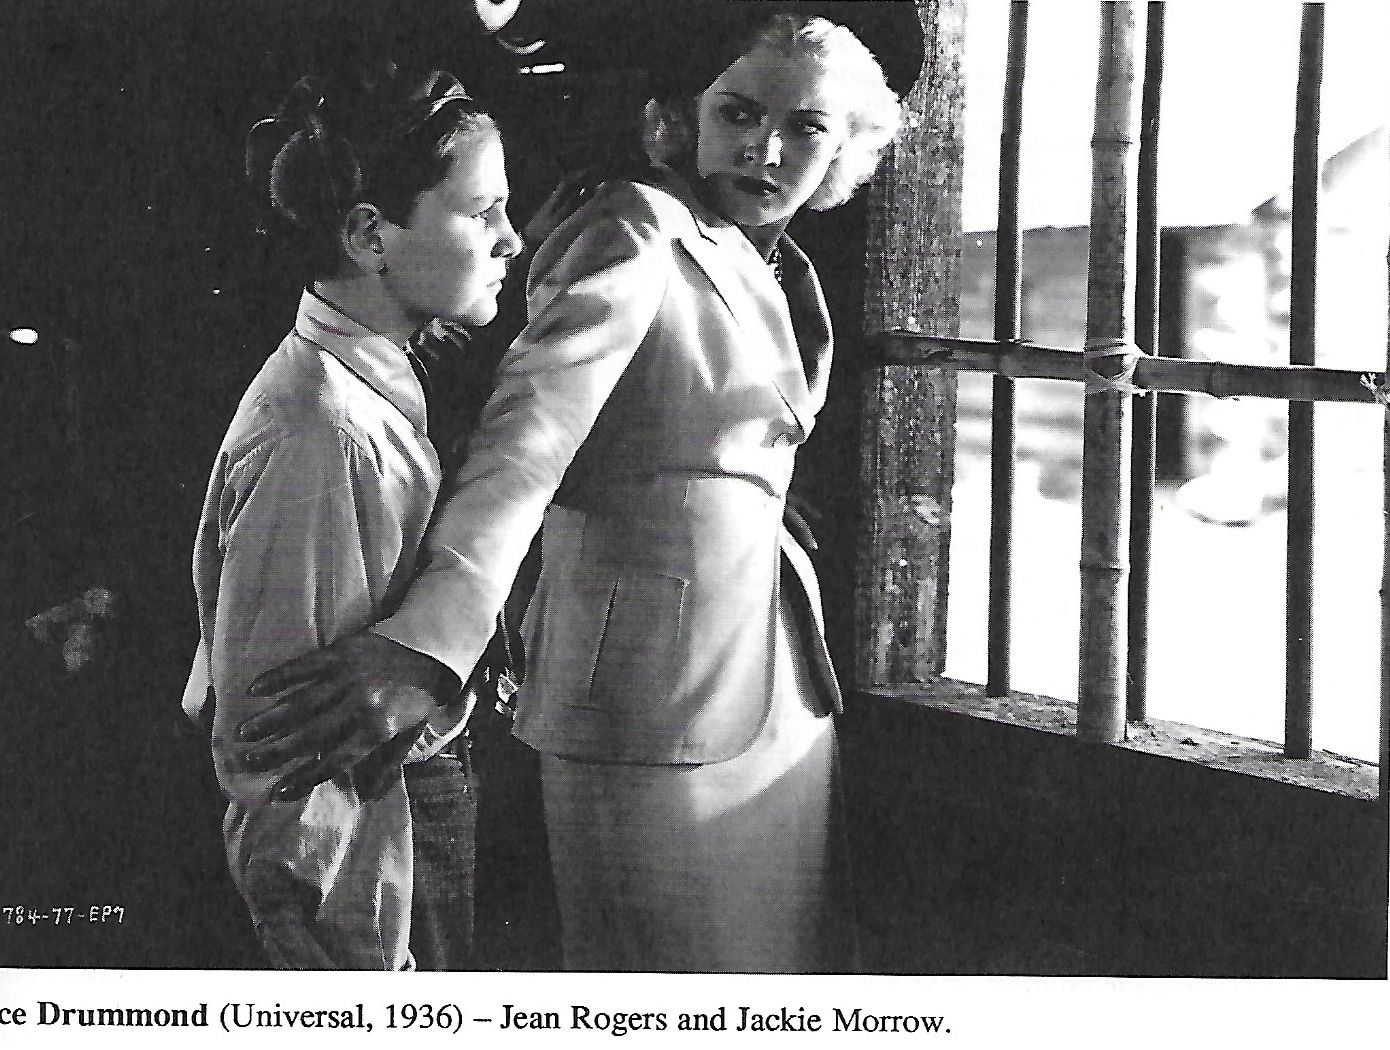 Jackie Morrow and Jean Rogers in Ace Drummond (1936)